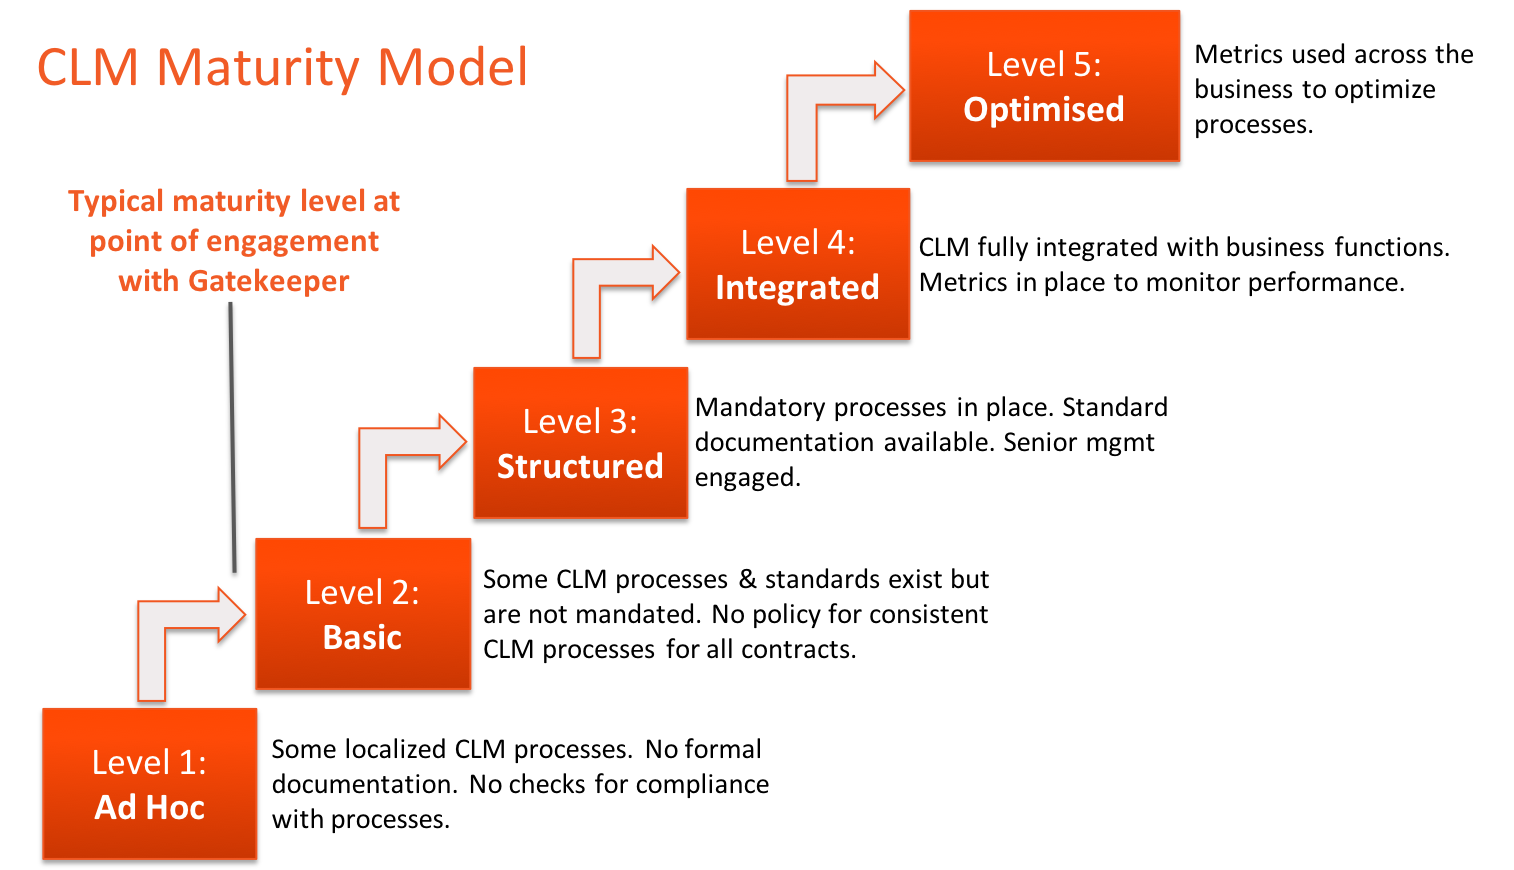 Representation of the CLM Maturity Model